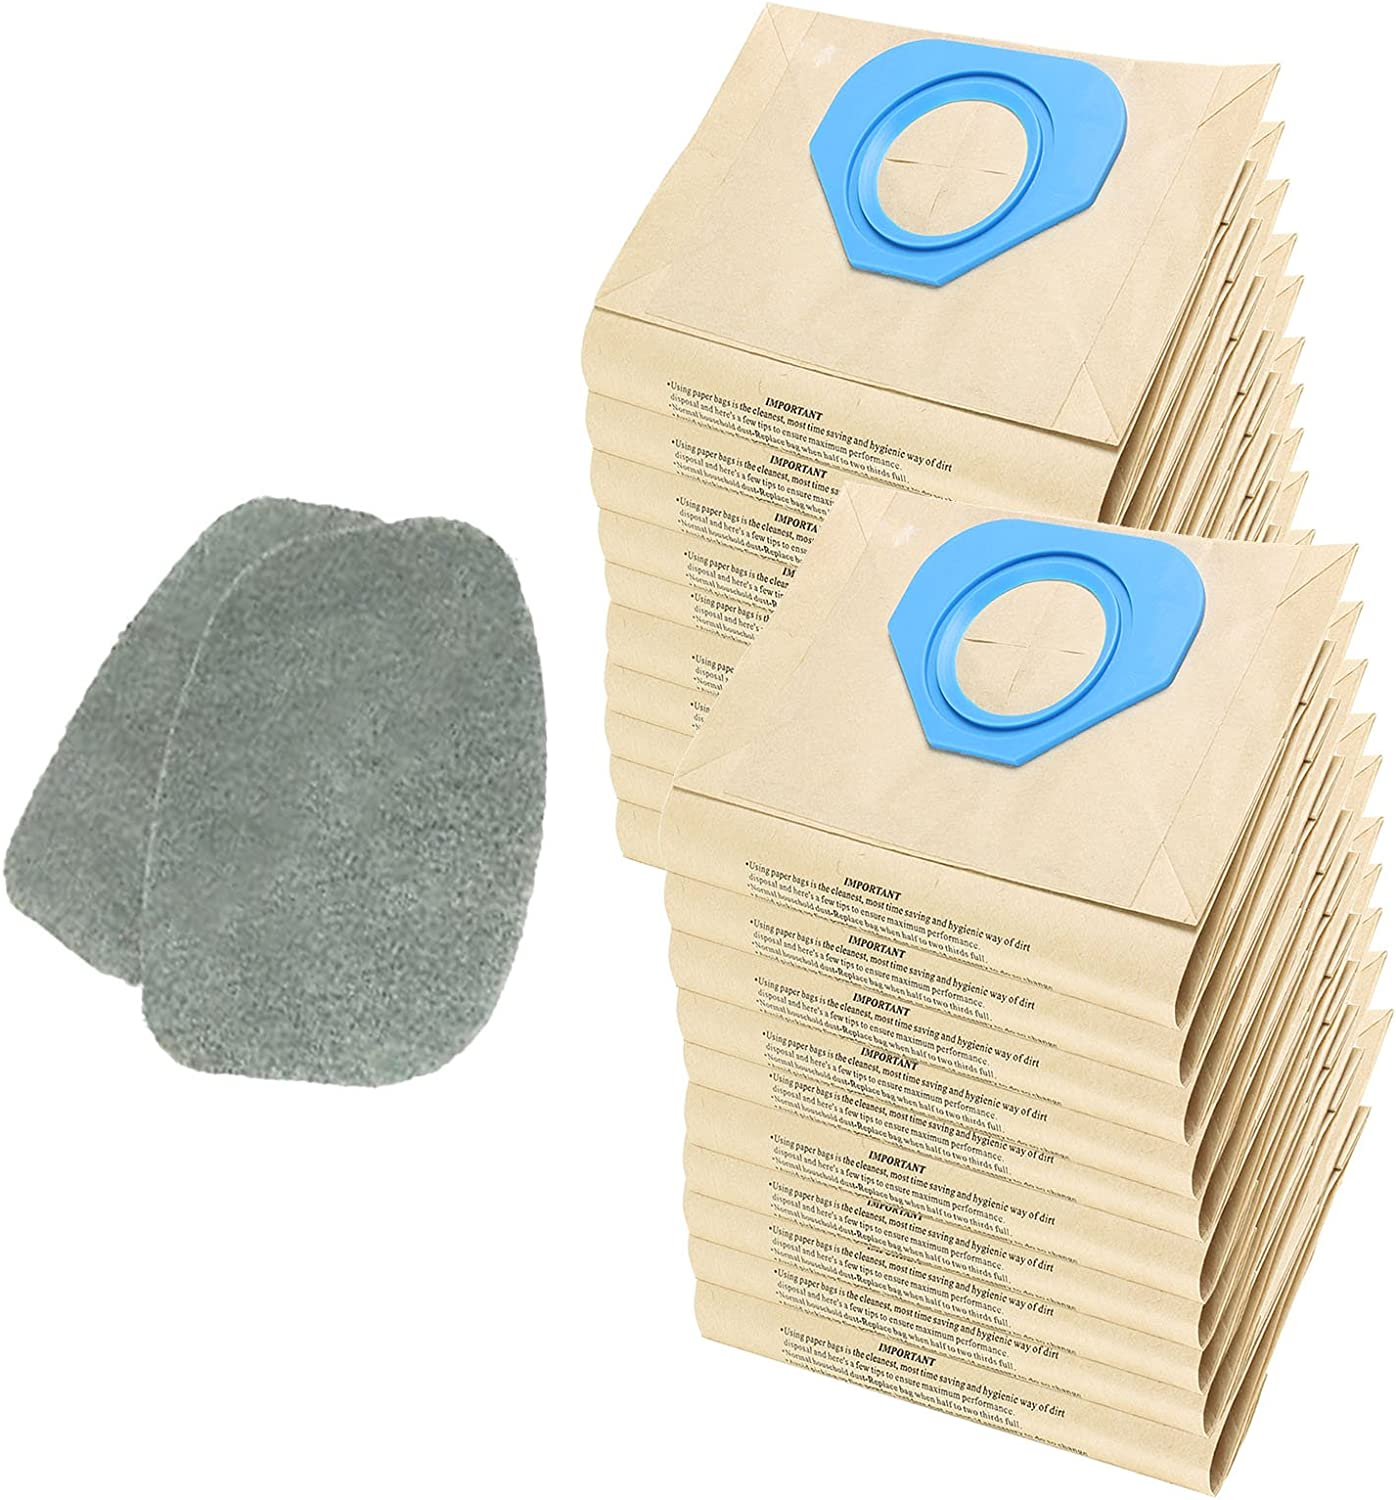 For Nilfisk GA70 GS90 Canister Vacuum Cleaner Filters GD80 GM90 GM80 GS80